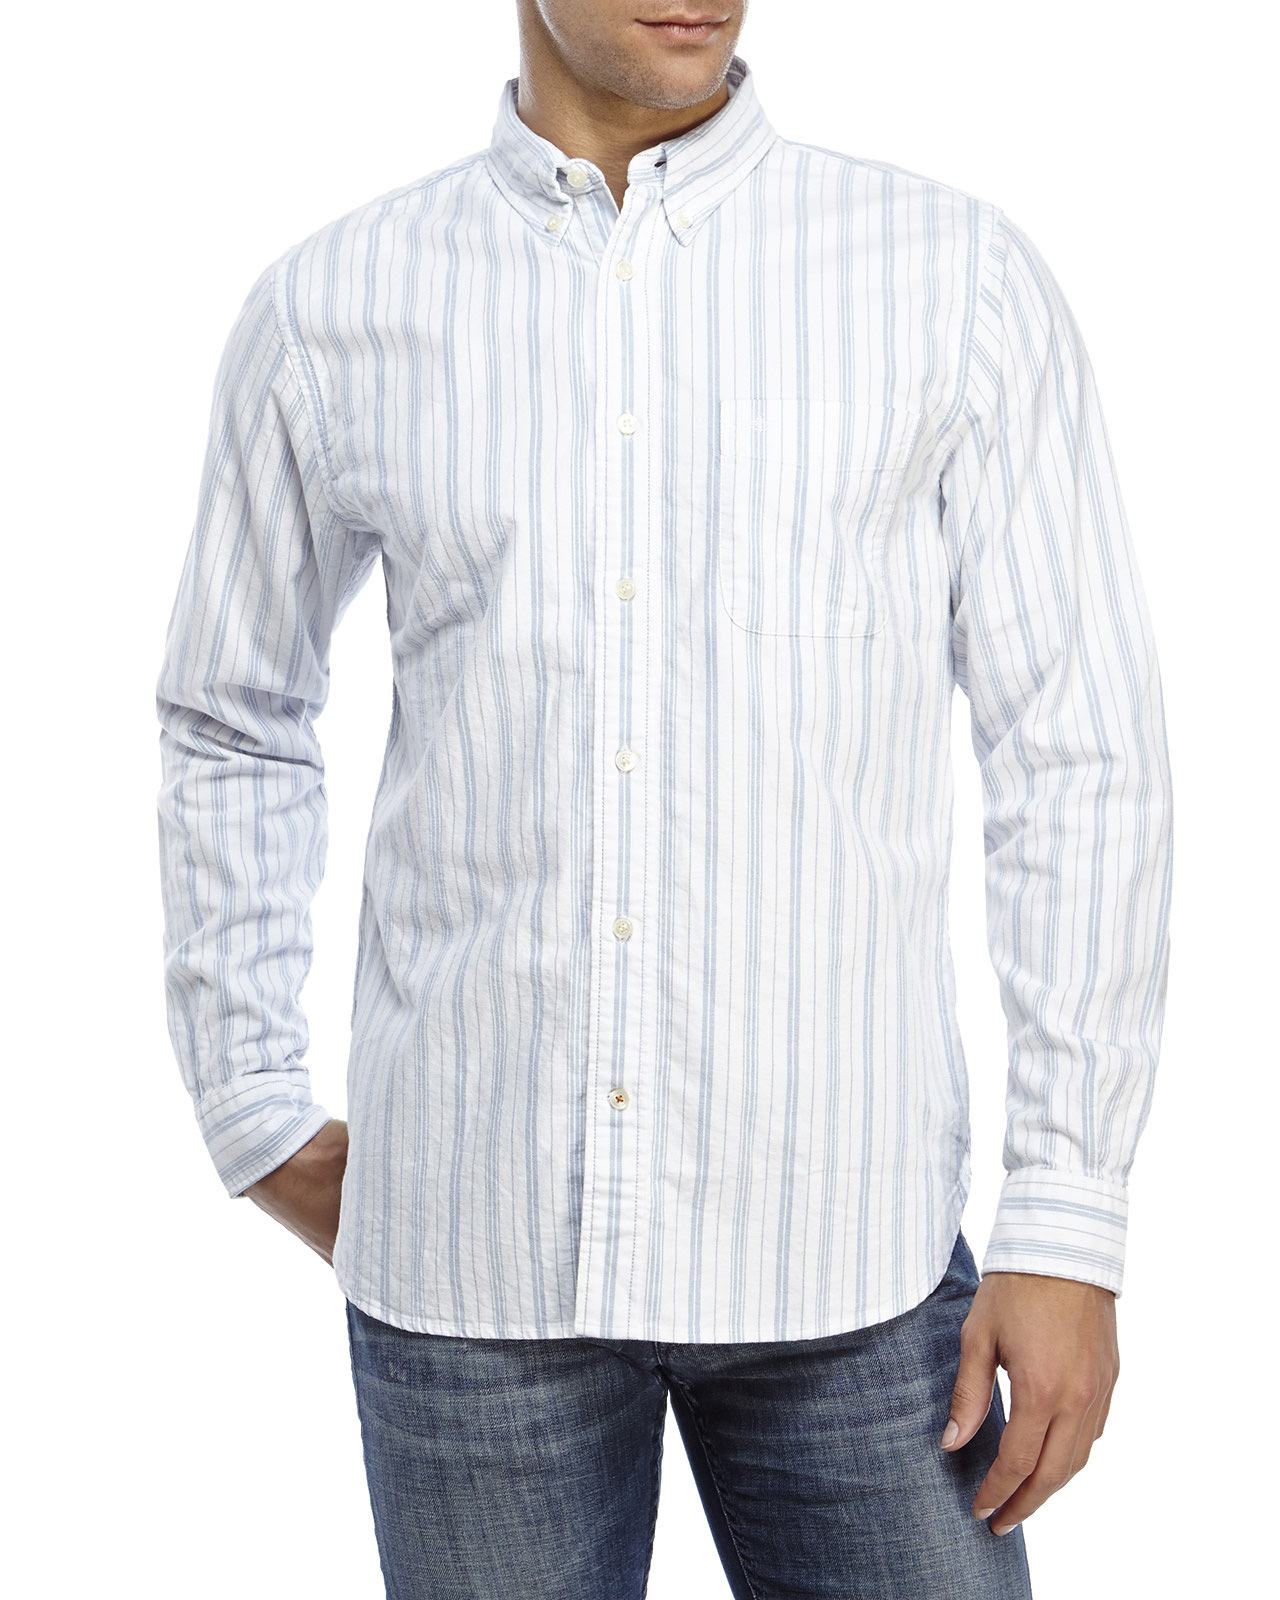 300e40181854 Dockers Striped Oxford Button-Down Shirt in Blue for Men - Lyst